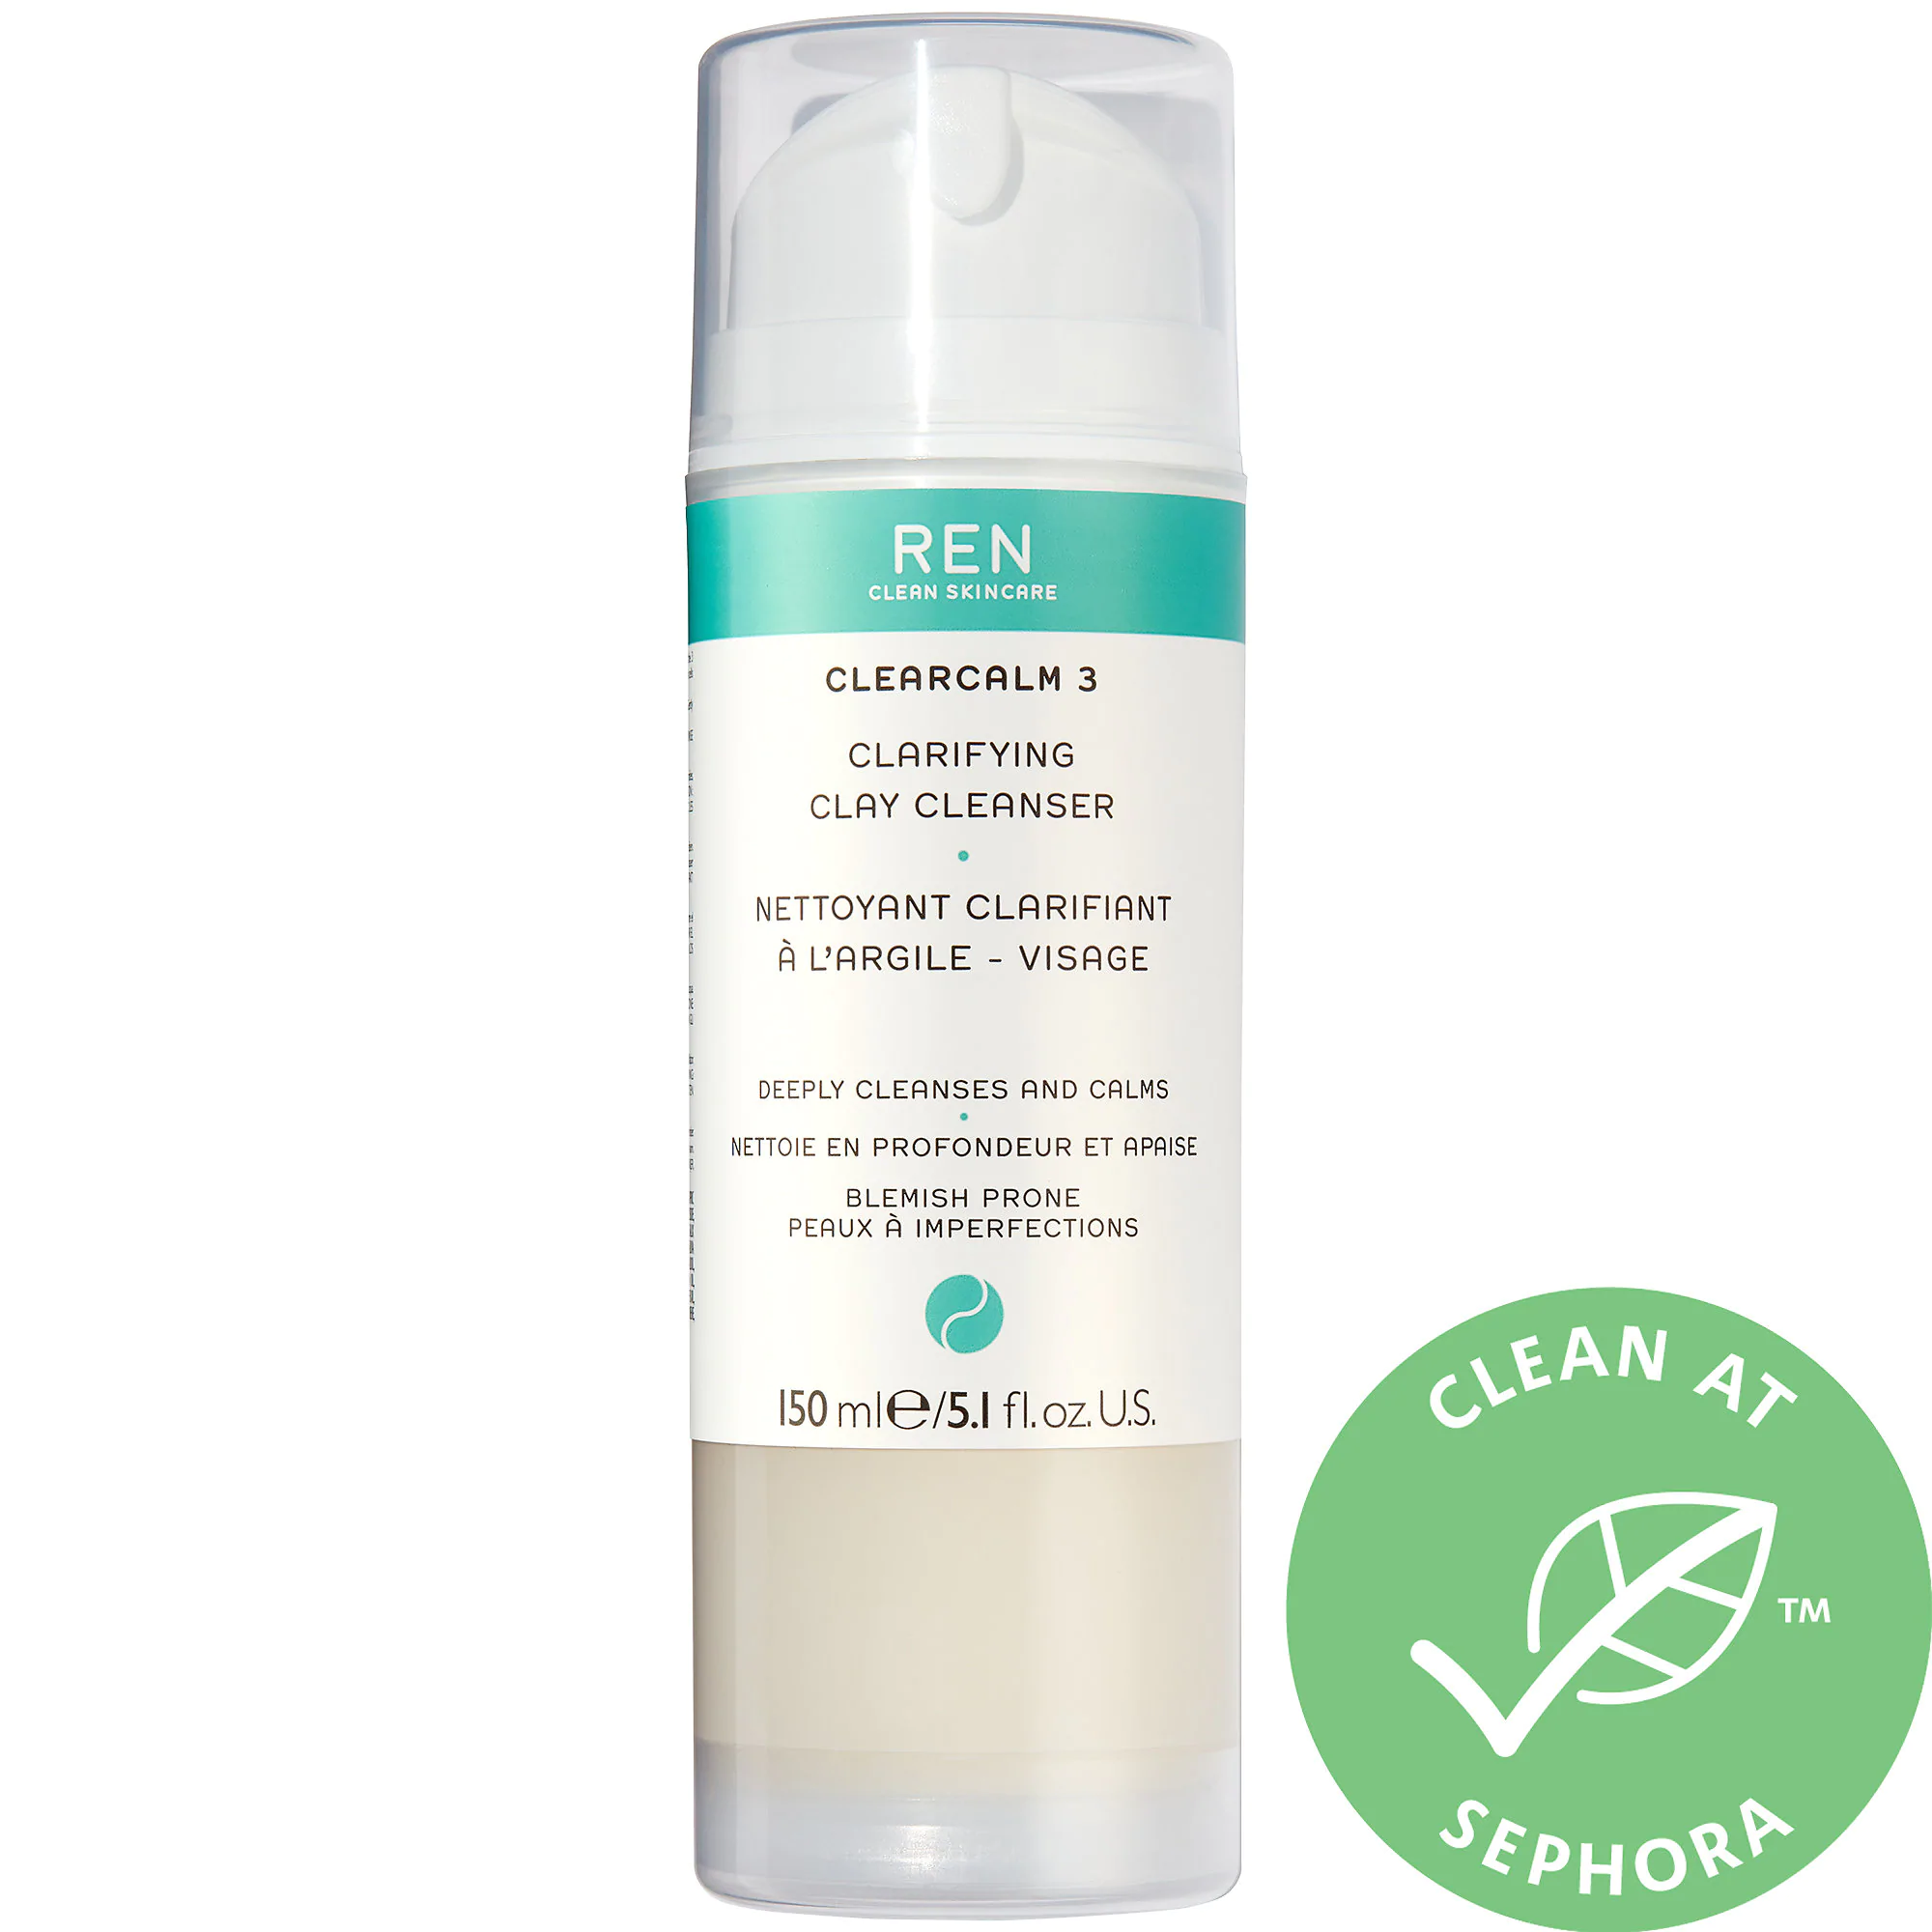 REN Clean Skincare Clearcalm 3 Clarifying Clay Cleanser